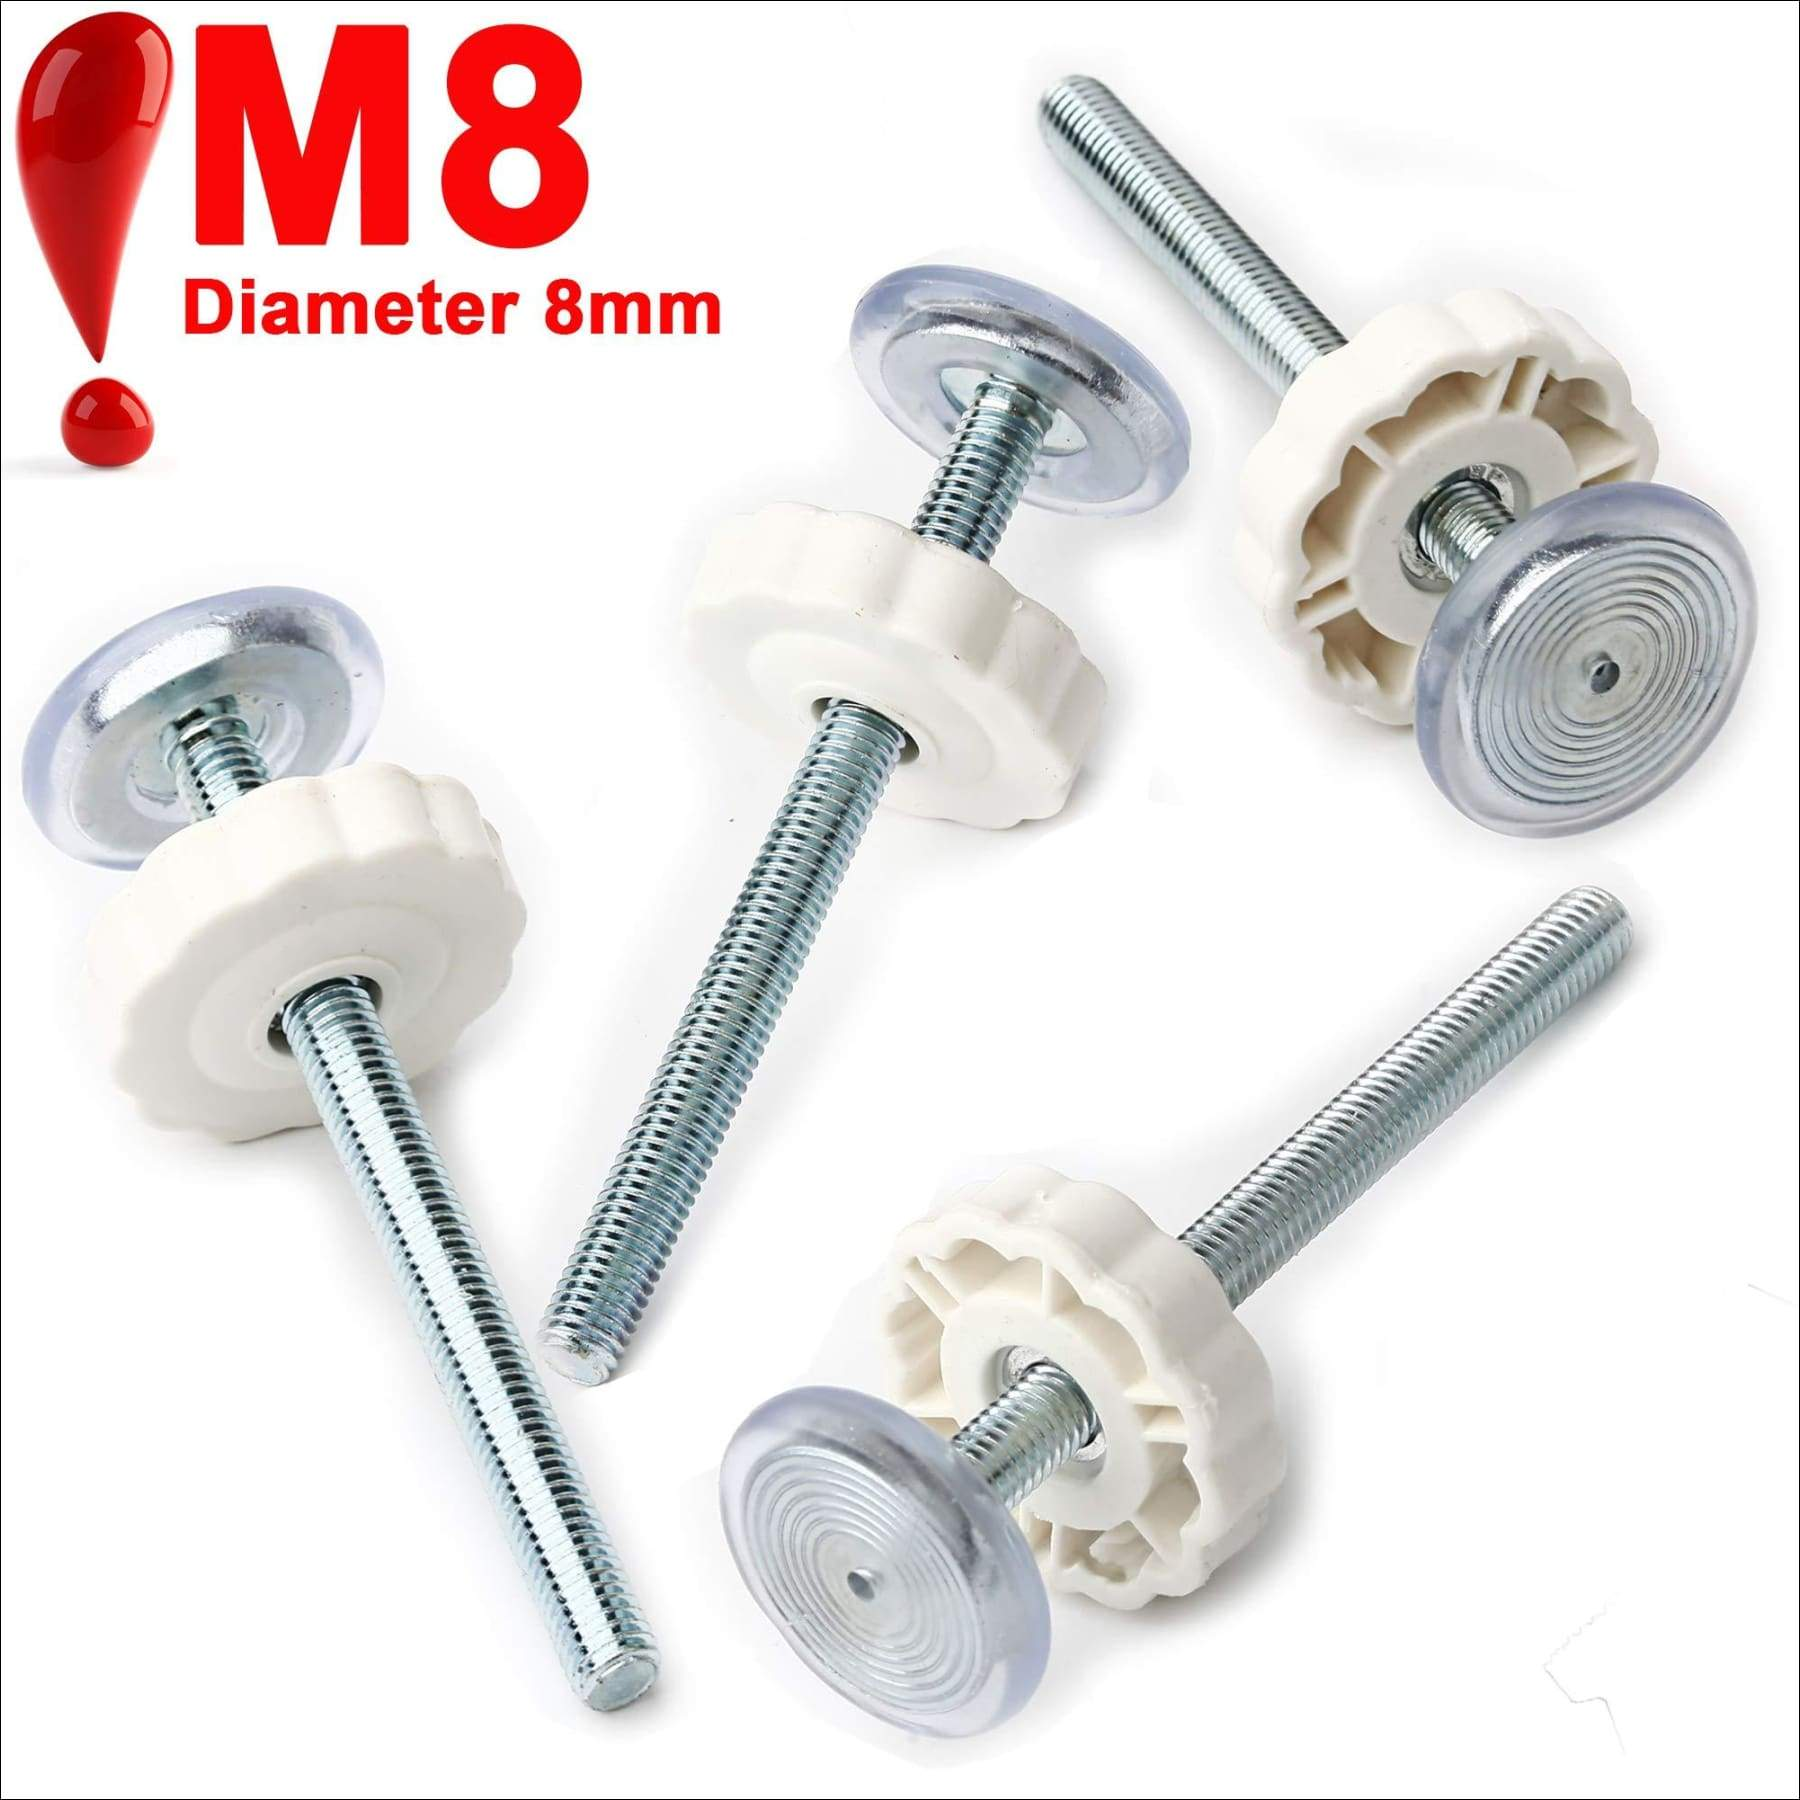 8 mm 4 Pack Pressure Gates Threaded Spindle Rods M8 Baby Gates Accessory